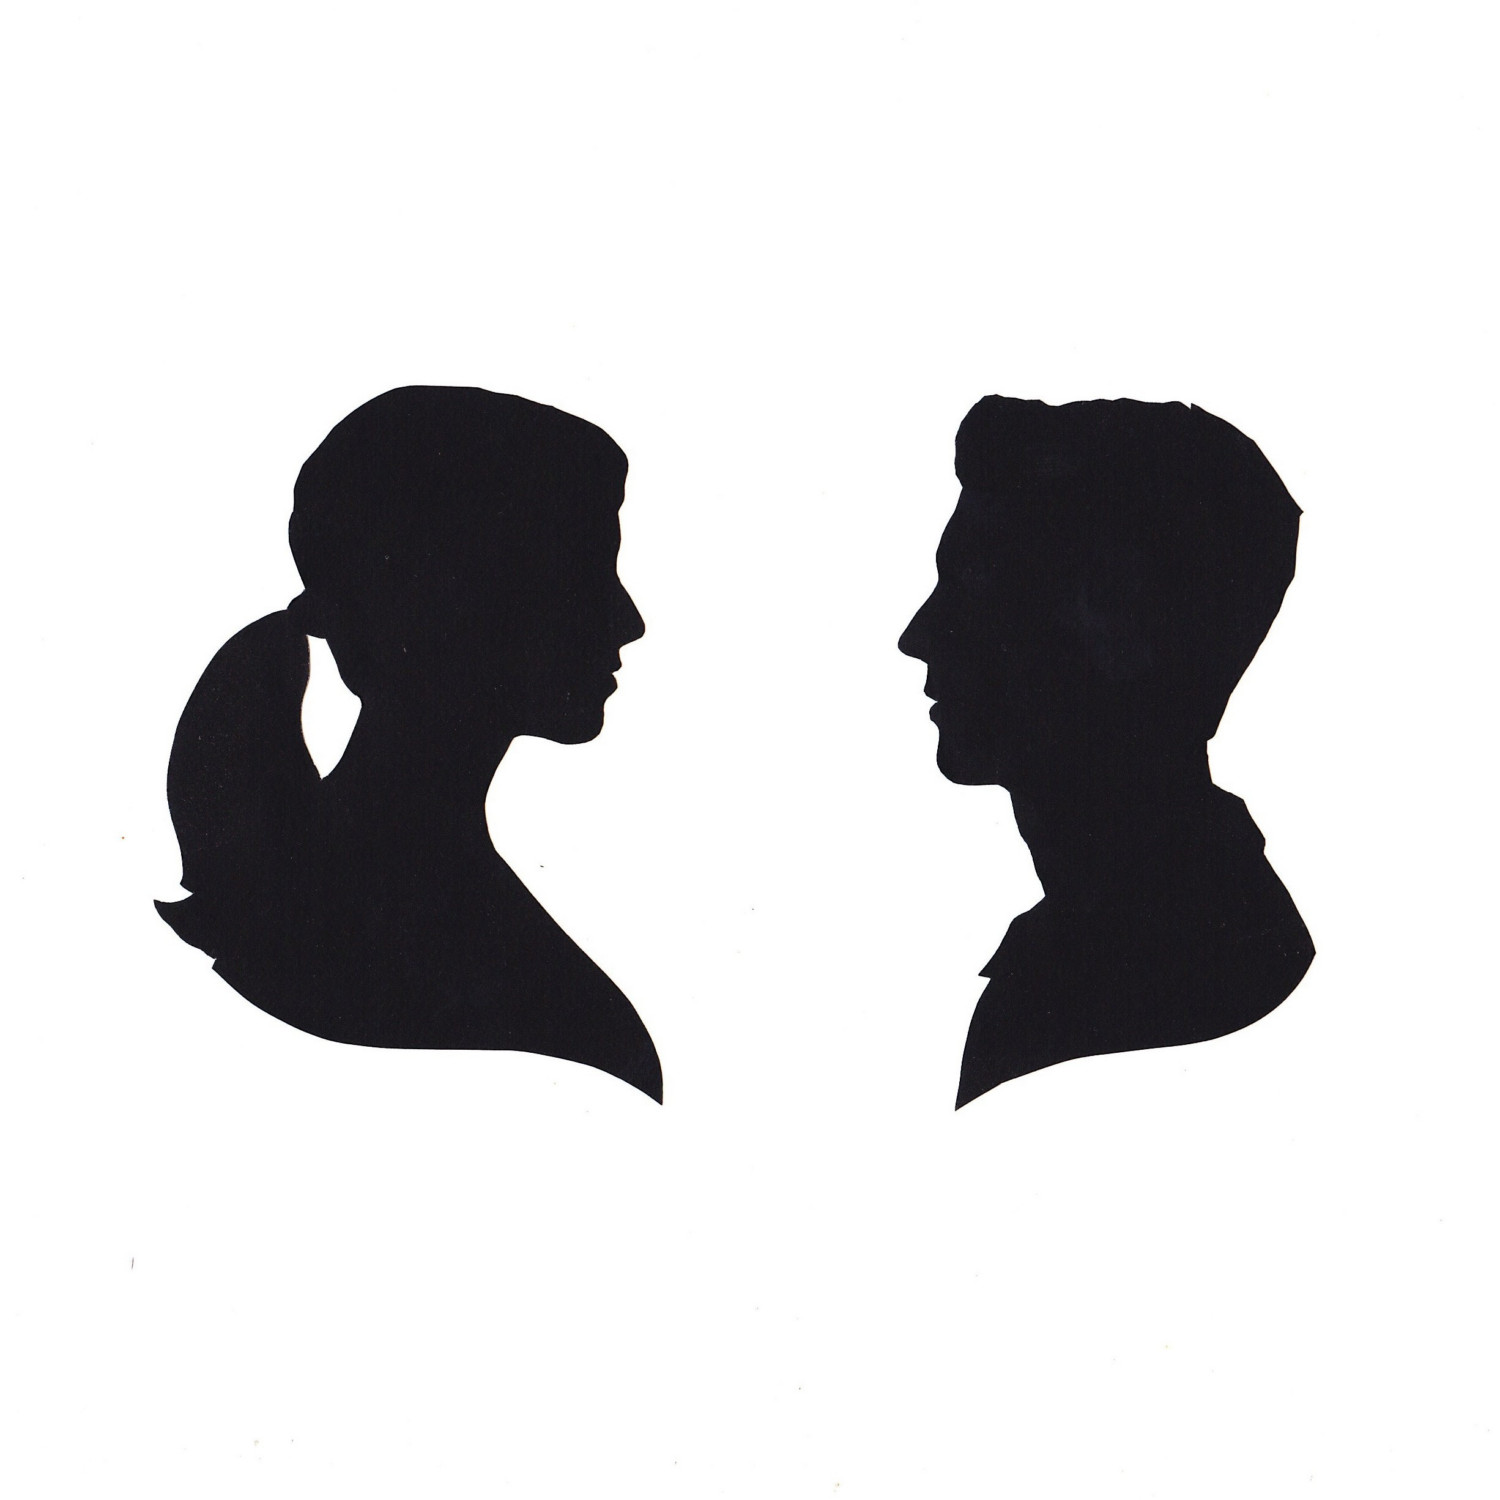 1500x1500 Digital Art Silhouette Young Man Head By Cheriesartsncrafts